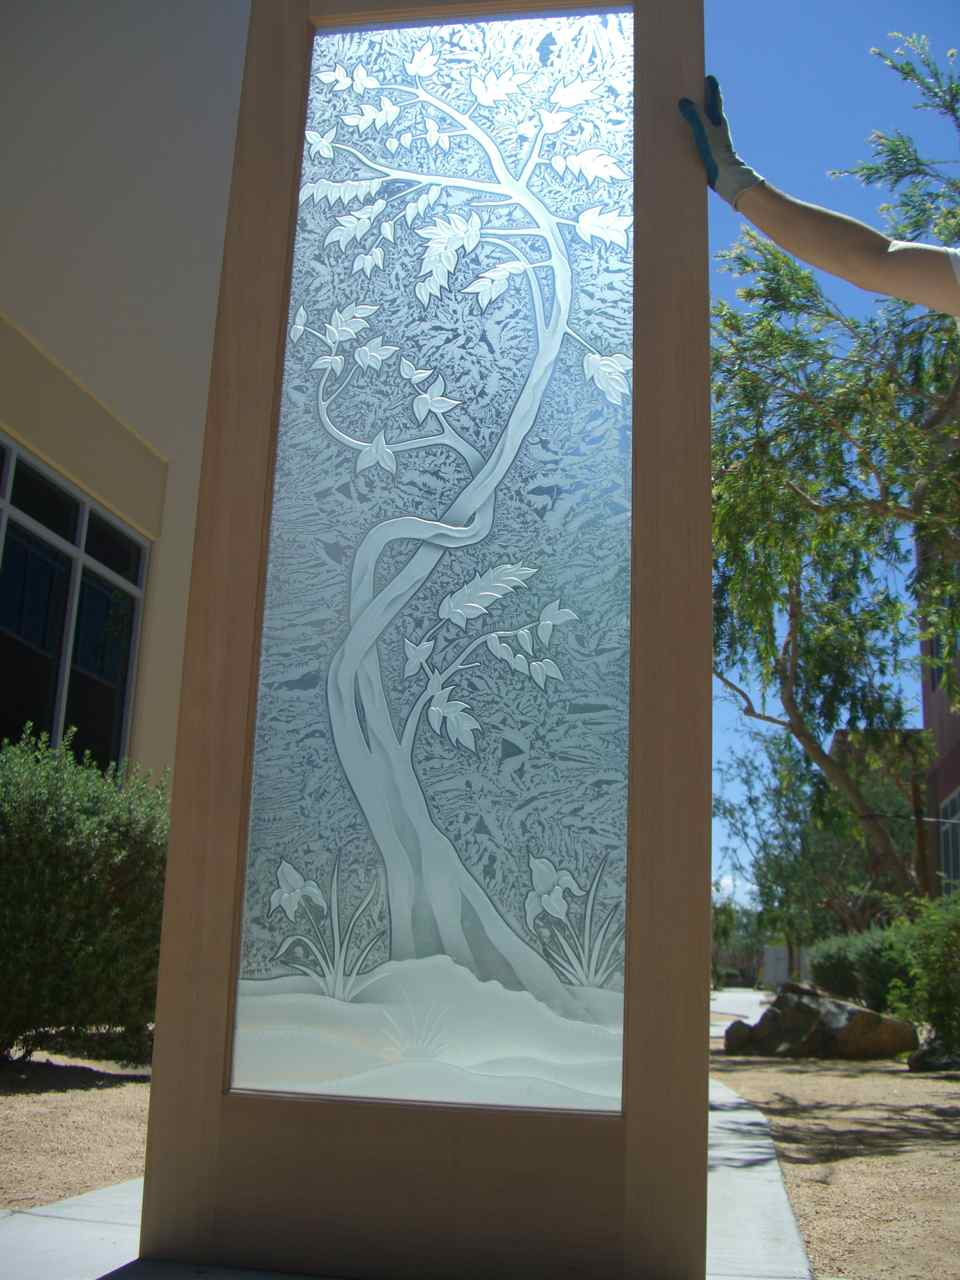 Etched glass doors privacy glass door inserts bamboo pictures to pin - Glass Doors Frosted Tree Priv Sapling Door Private Sapling 3d Door